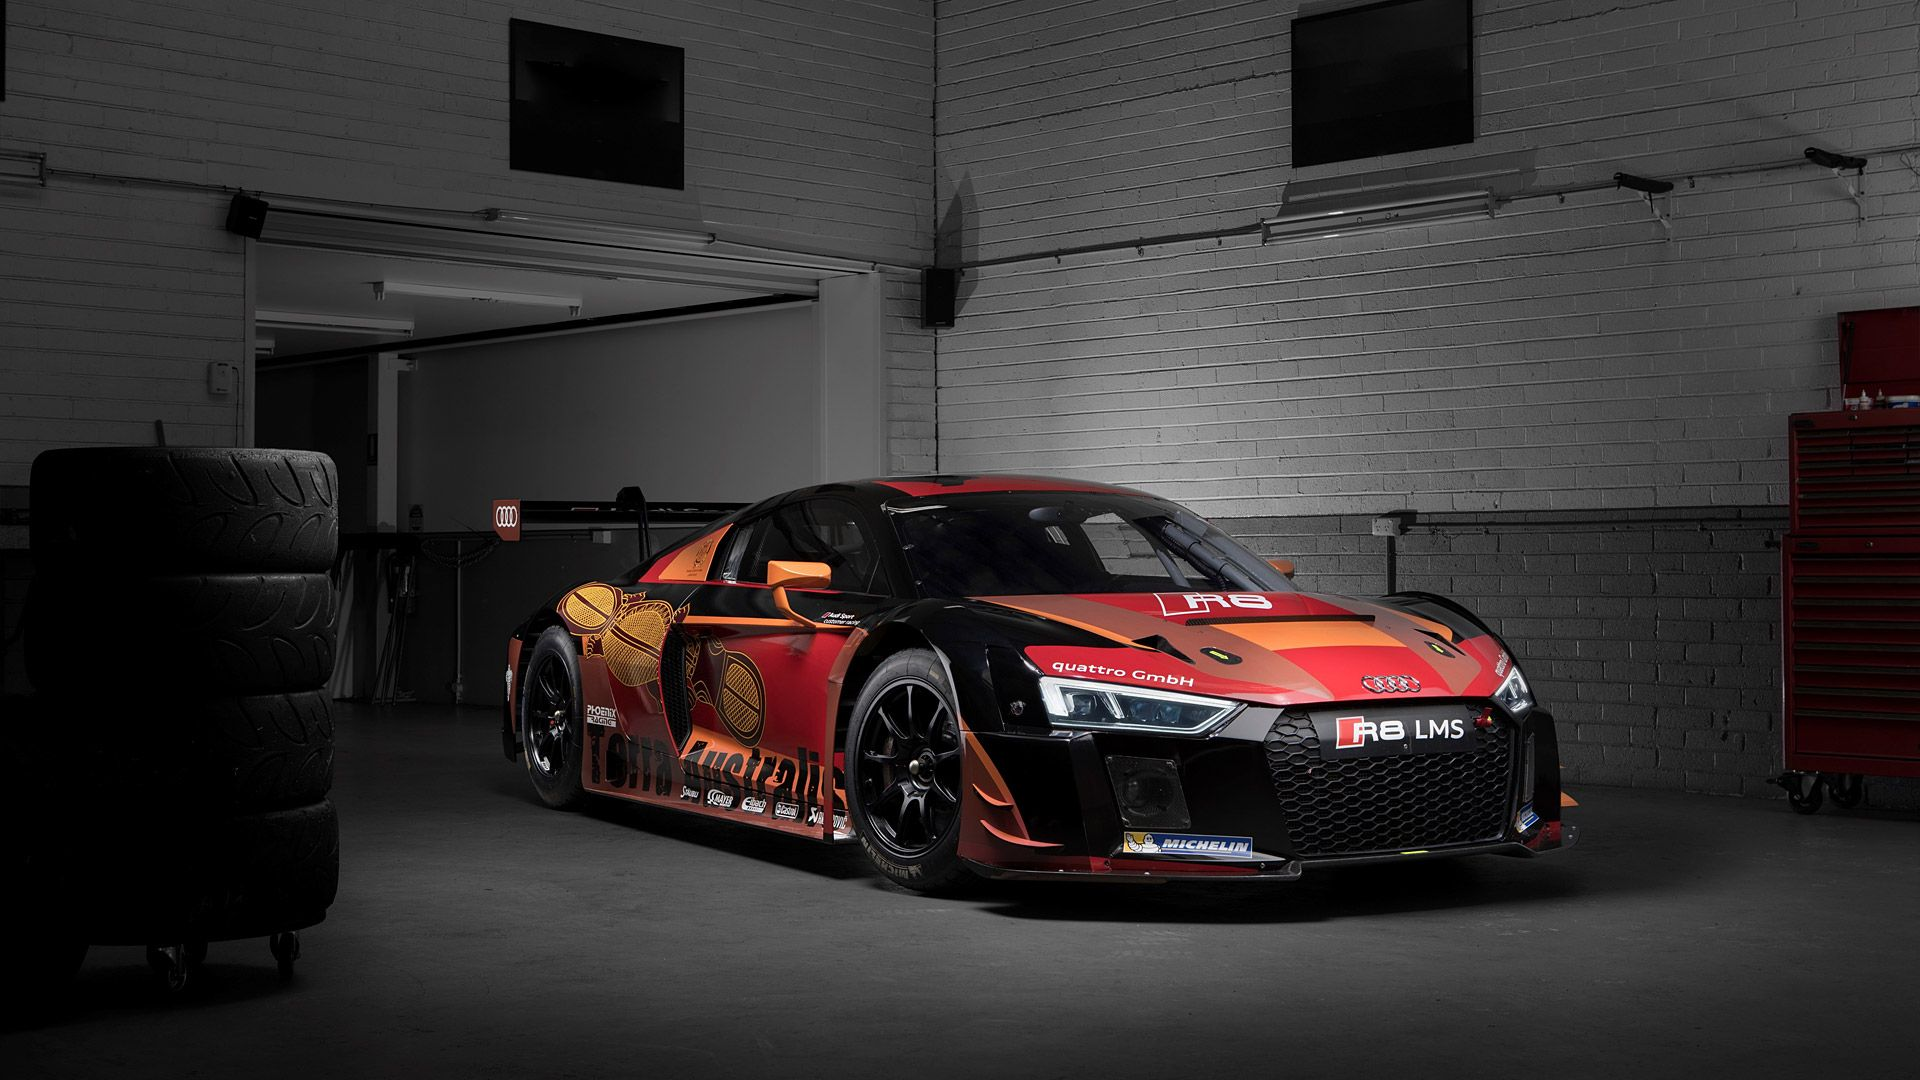 Audi R Lms Ultra Hd Wallpaper Hd Wallpapers Illinoisliver With